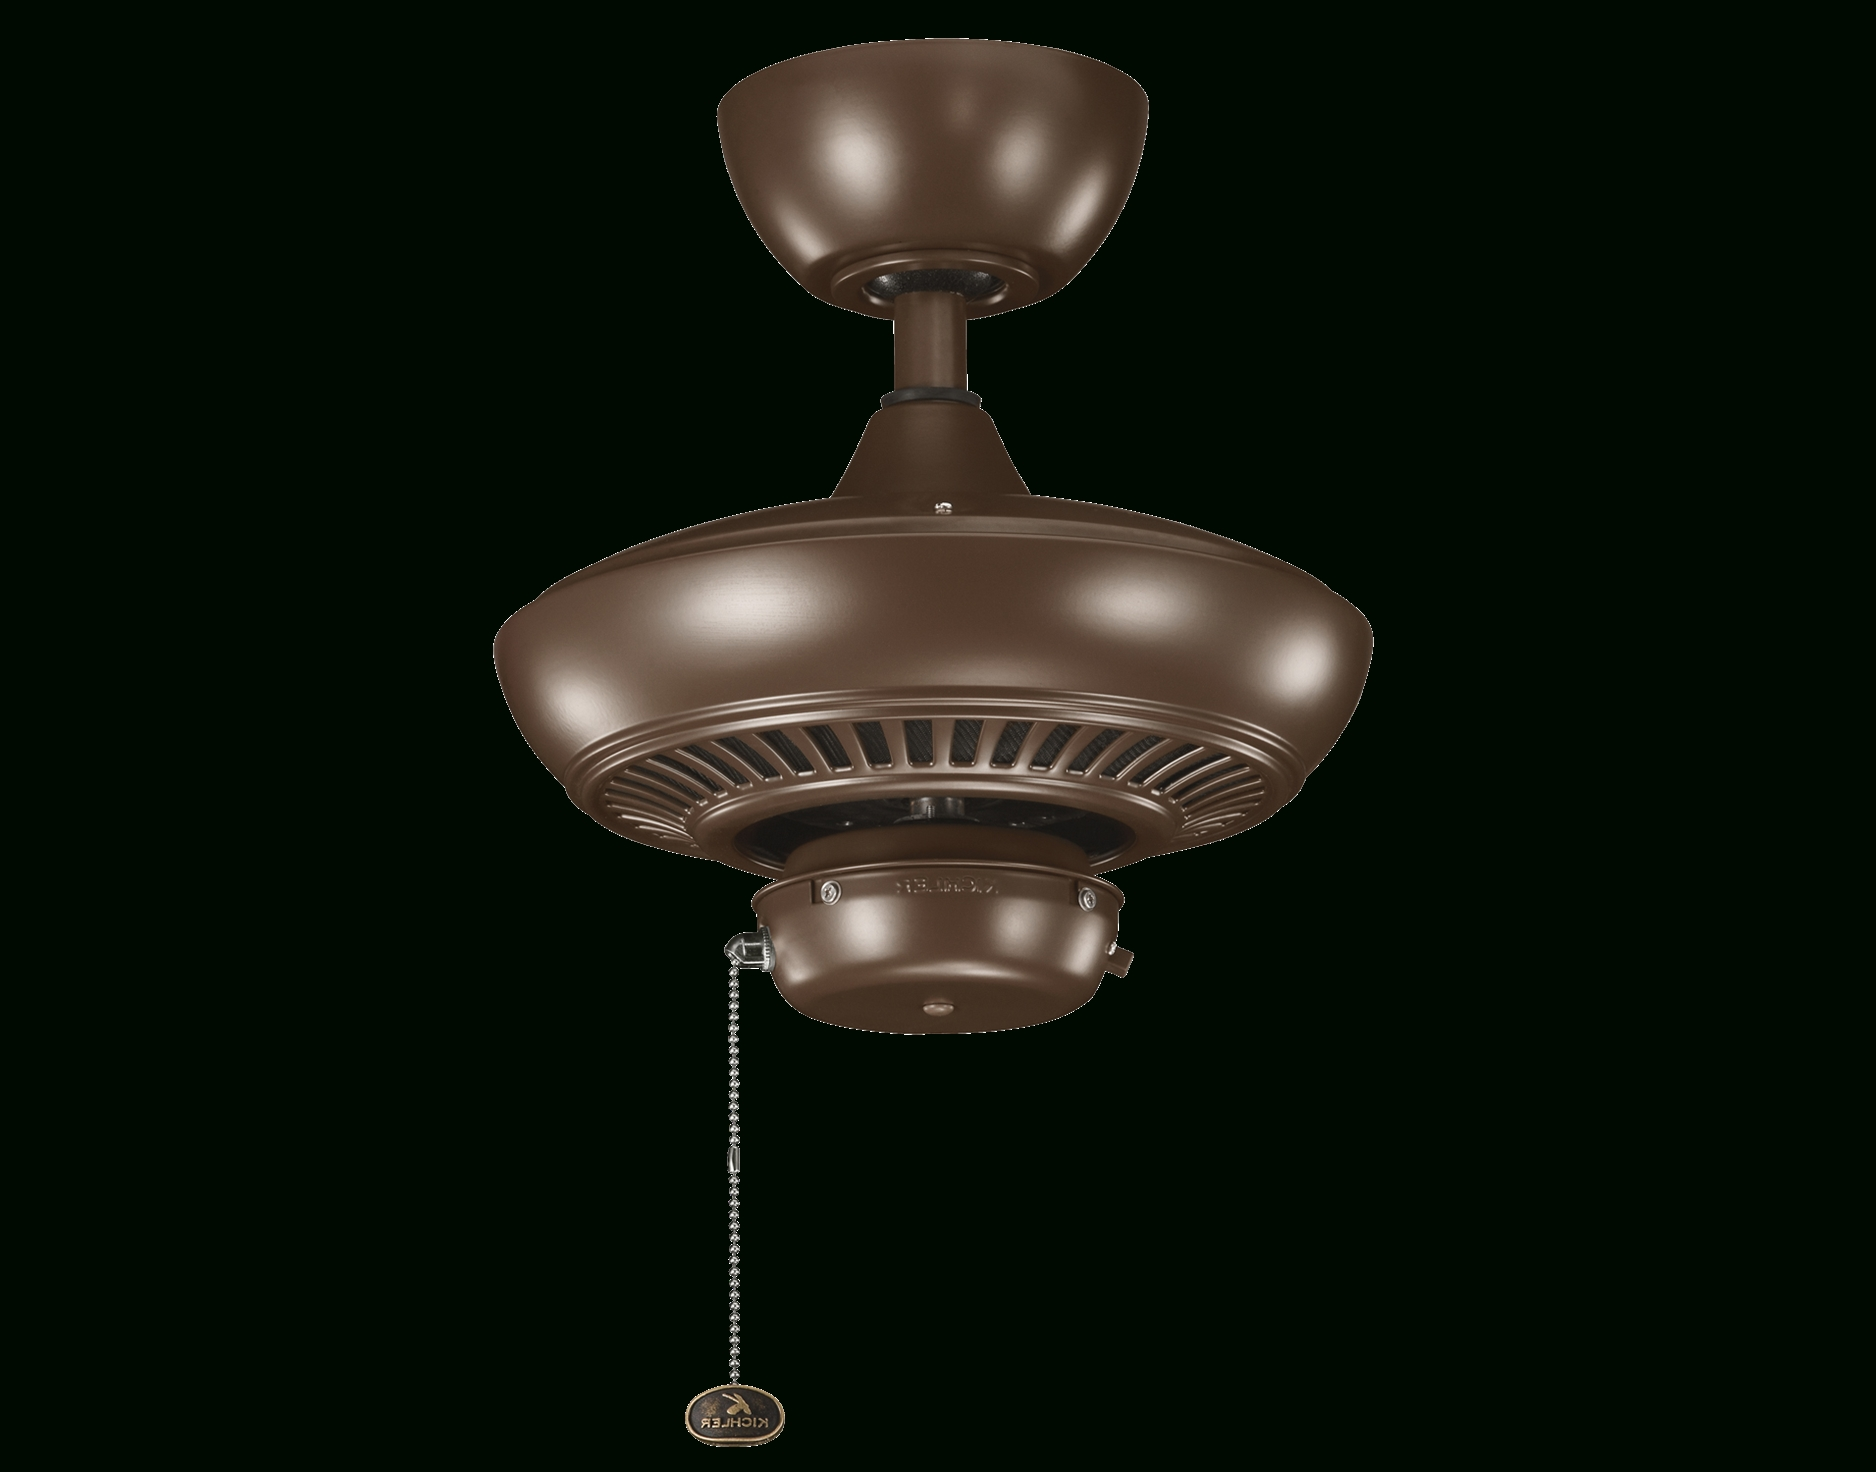 Outdoor Ceiling Fans With Pull Chain Within Well Known Awesome Outdoor Ceiling Light With Pull Chain – Divineducation (View 14 of 20)